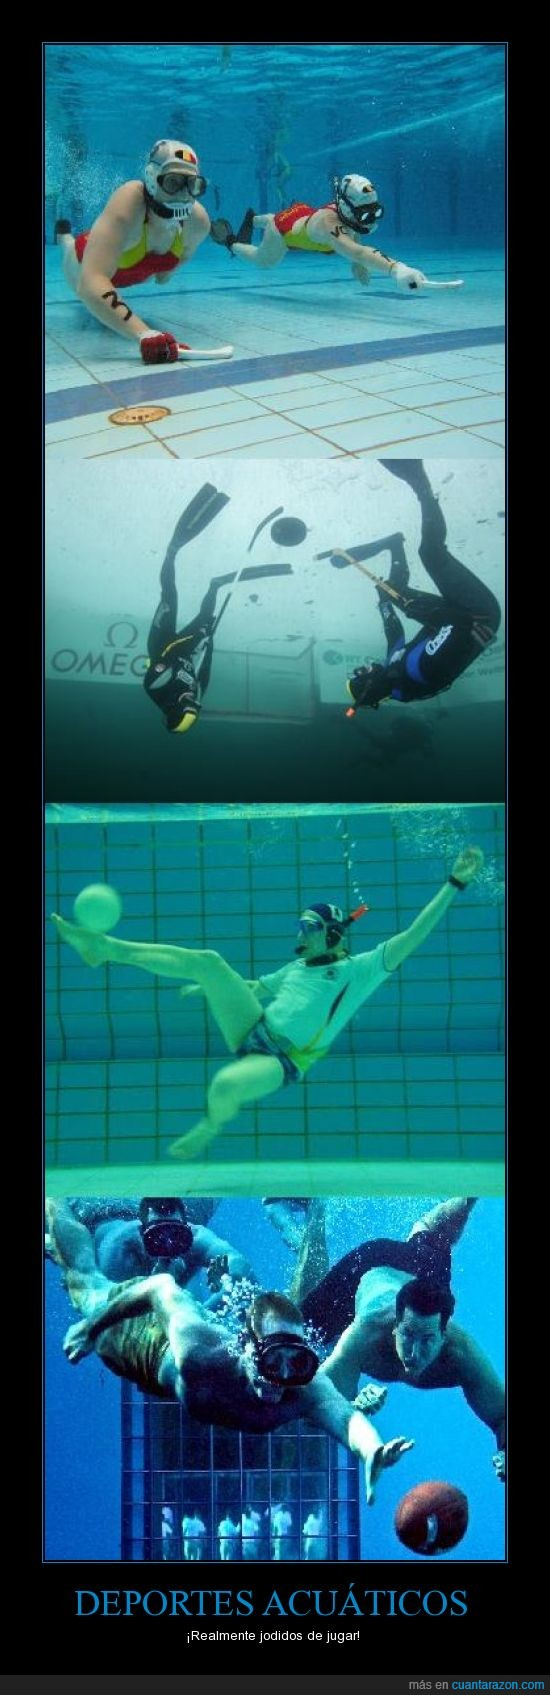 agua,deportes acuaticos,football,hielo,Underwater football,Underwater hockey,Underwater ice hockey,Underwater rugby